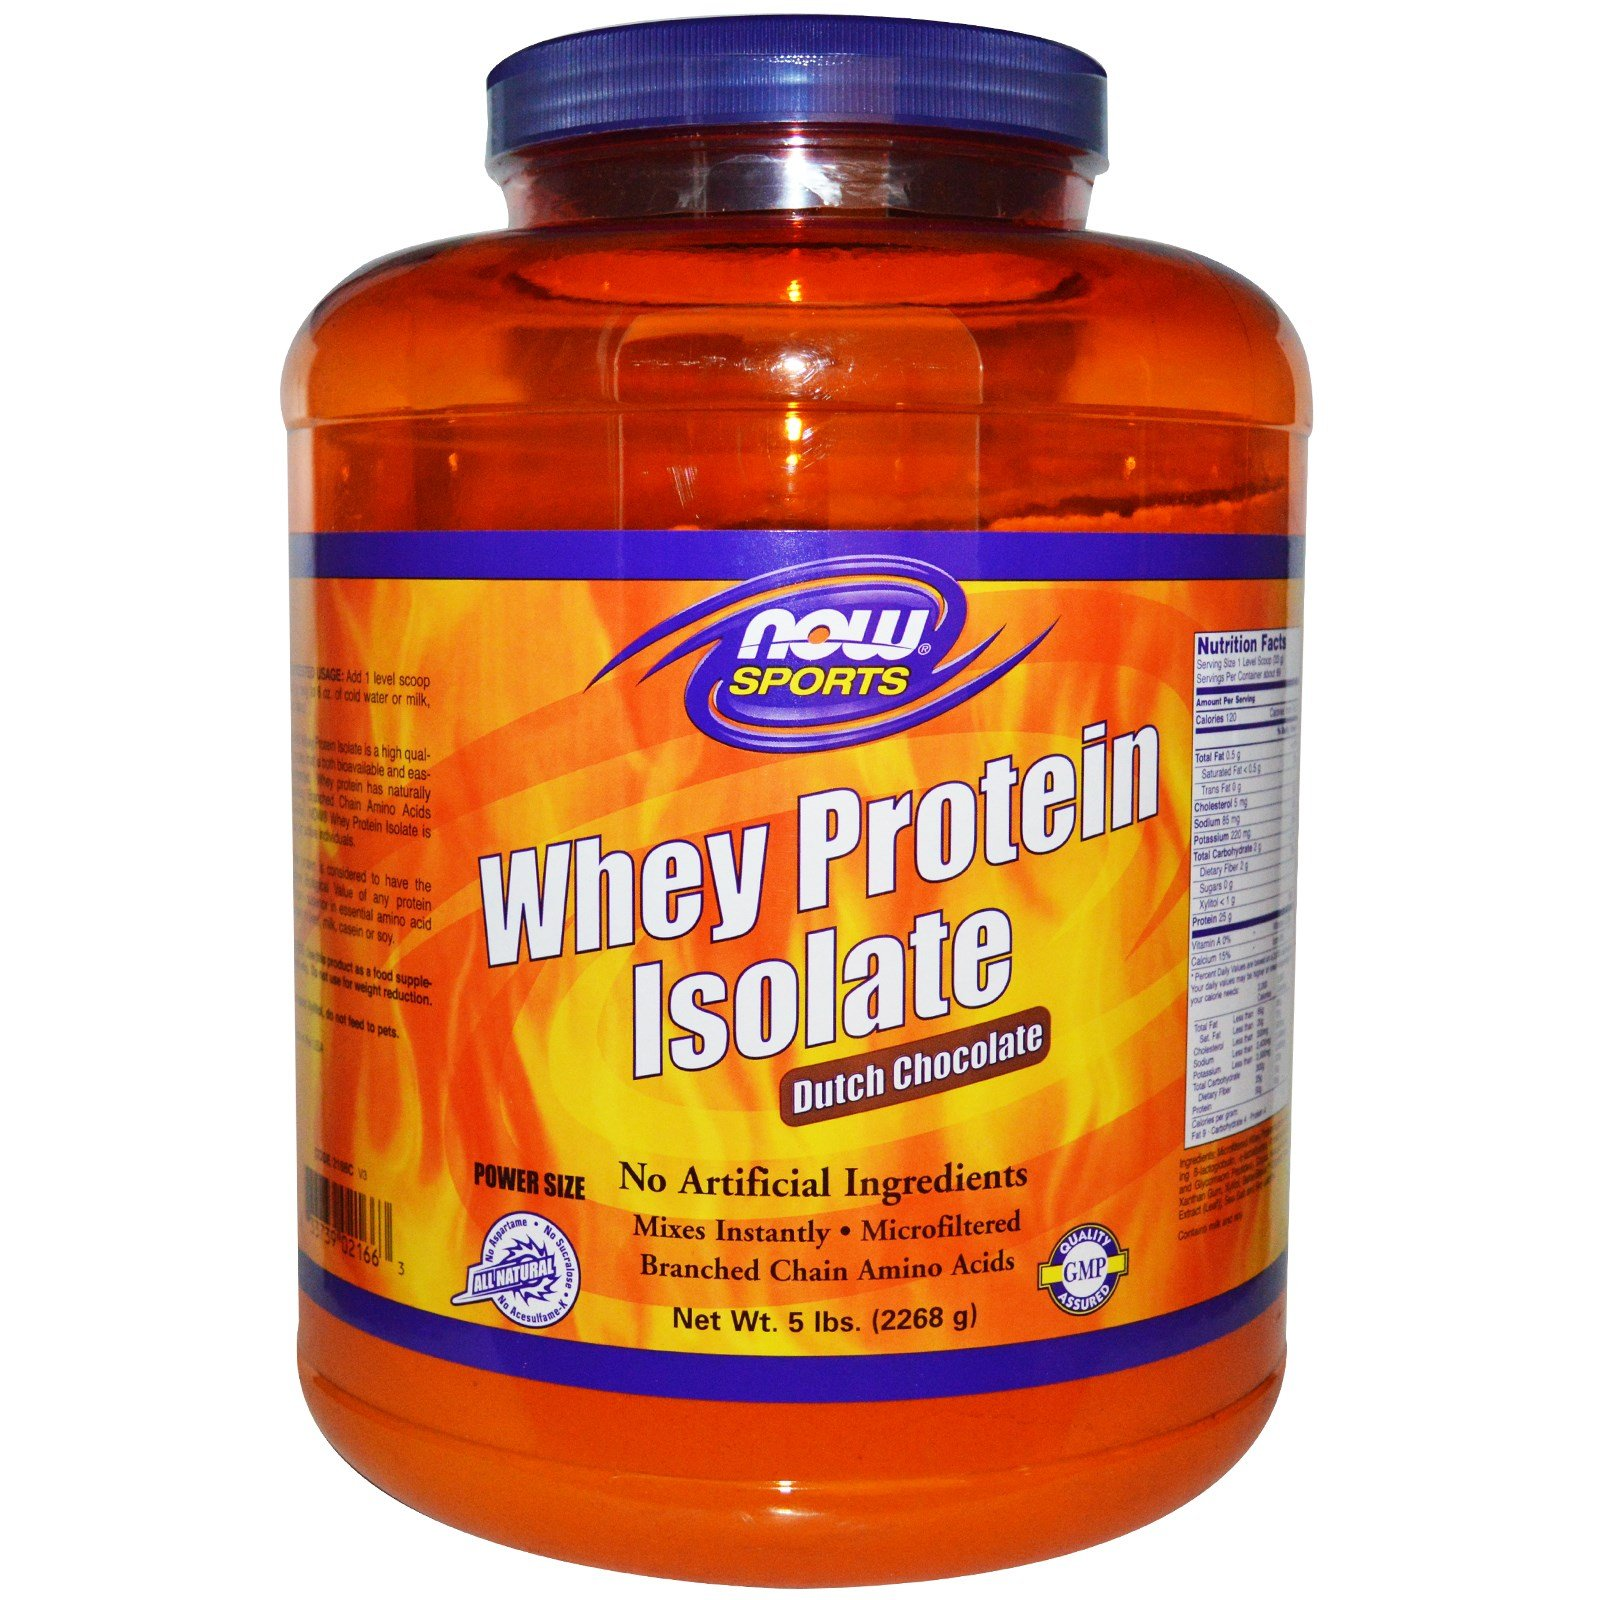 Now Foods, Sports, Whey Protein Isolate, Dutch Chocolate, 5 lbs (2268 g) - 2PC